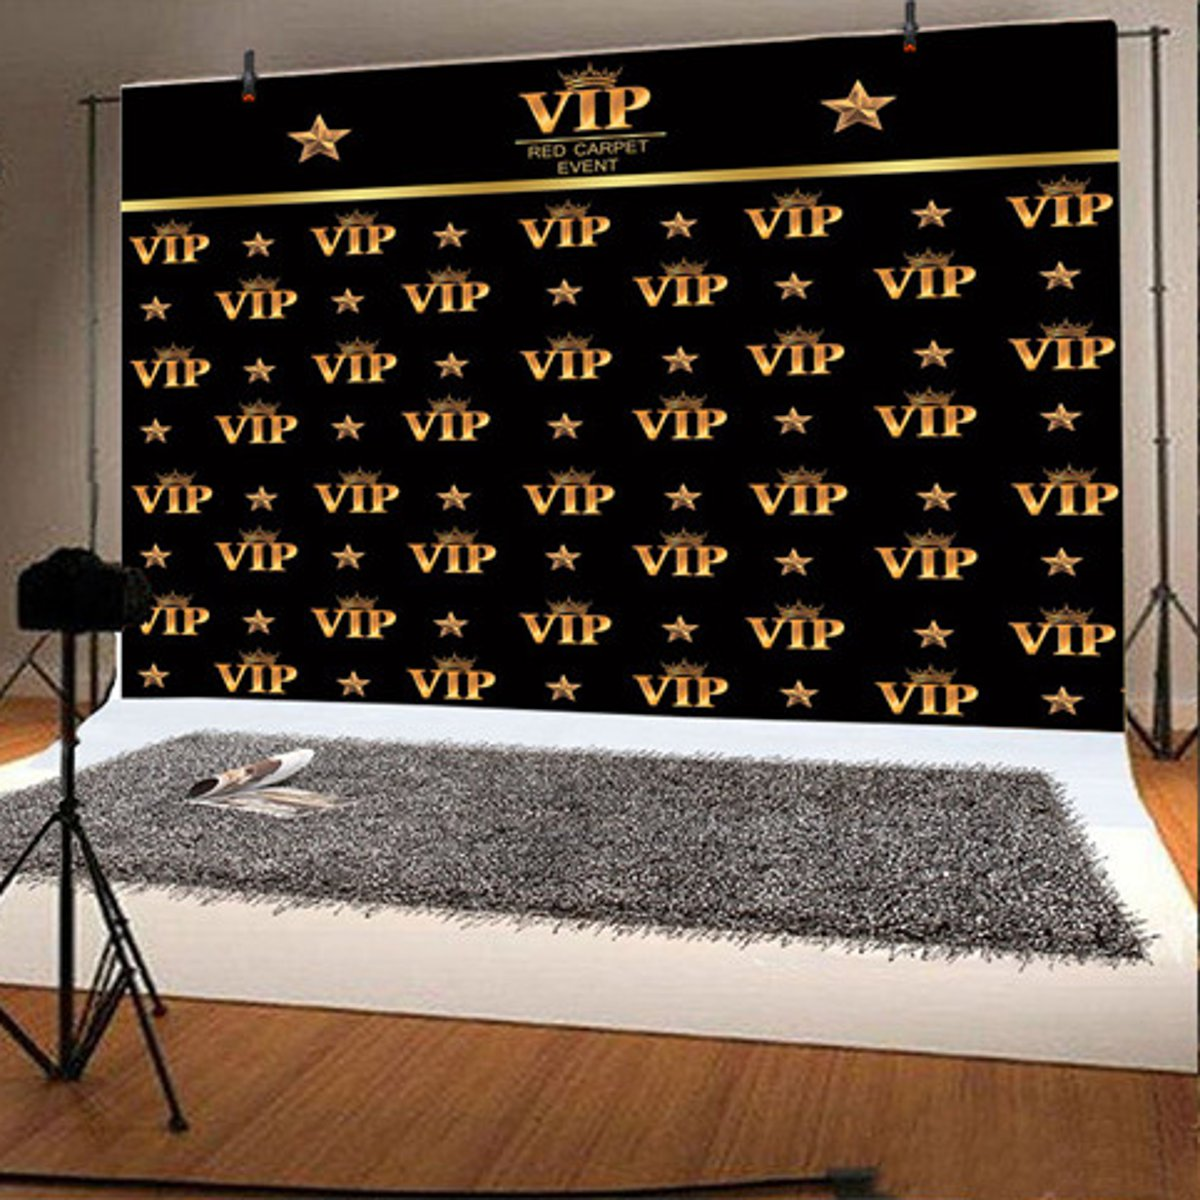 Vinyl Red Carpet Event Party Backdrop Photography Background Cloth Birthday Prom Ball Wedding Decoration Studio Photo Props